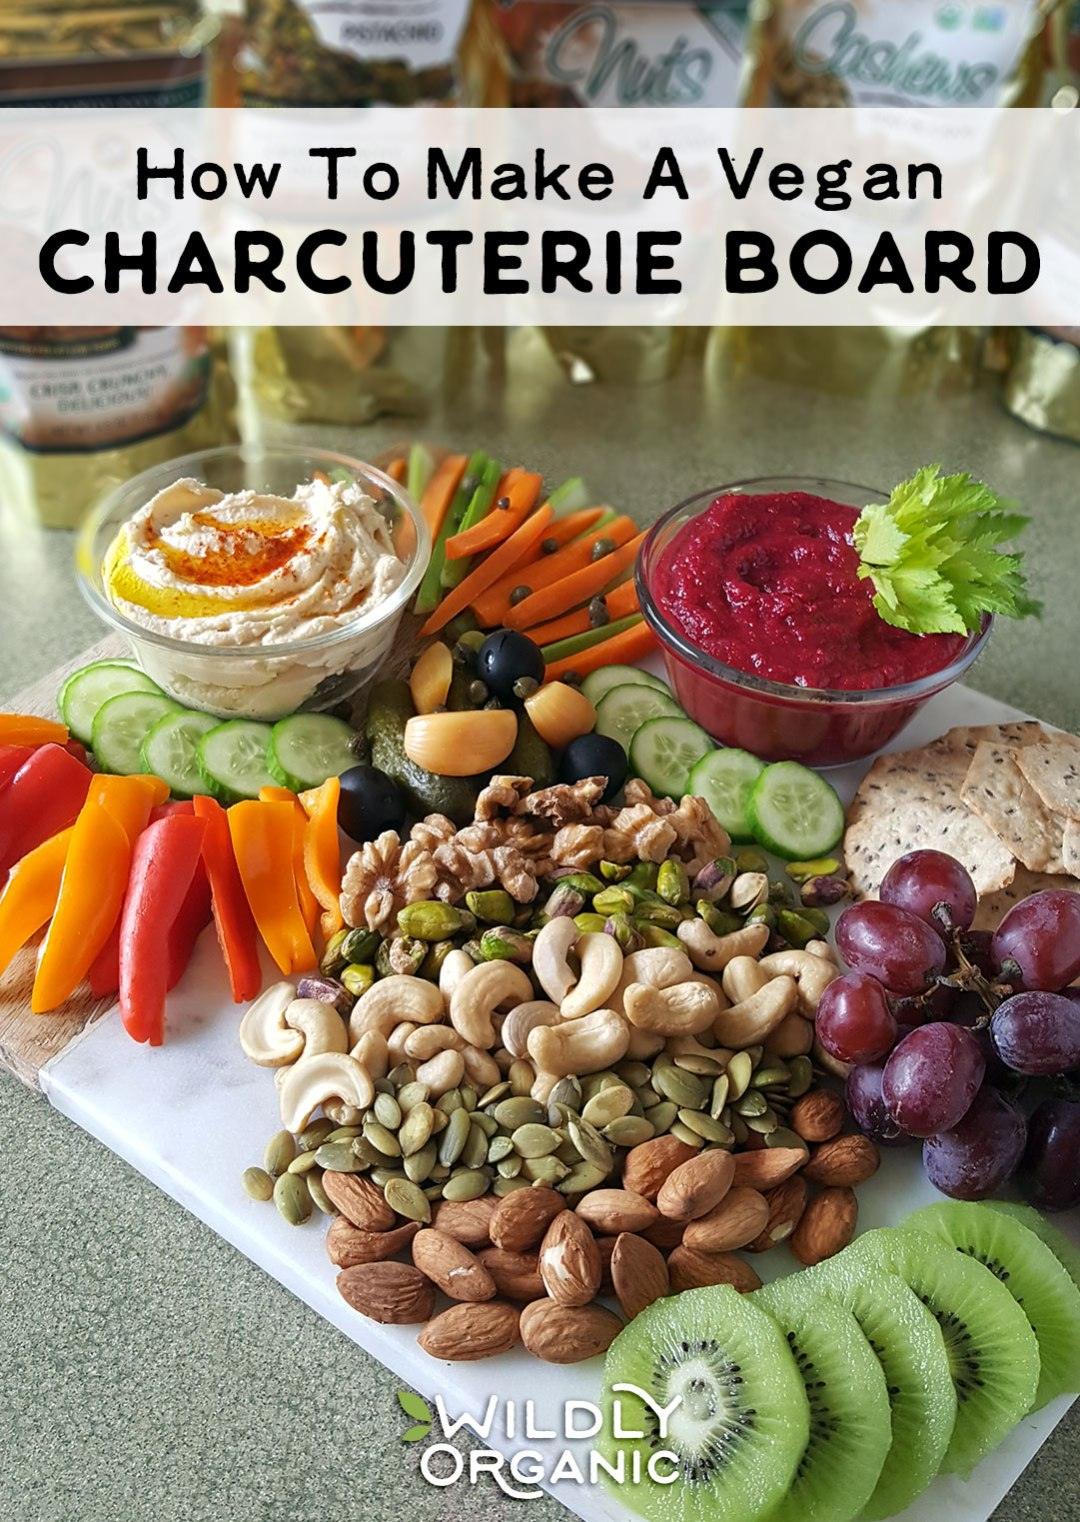 Photo of sliced veggies, nuts, dips, crackers, fruit, and more on a marble cutting board. | Charcuterie boards are fantastic for parties, movie night, and snacky weekend afternoons. They are also typically made with meats and cheeses. Why let the meat eaters have all the fun? I'll show you how to make a vegan charcuterie board that is beautiful, healthy, and will be sure to wow your family and friends!